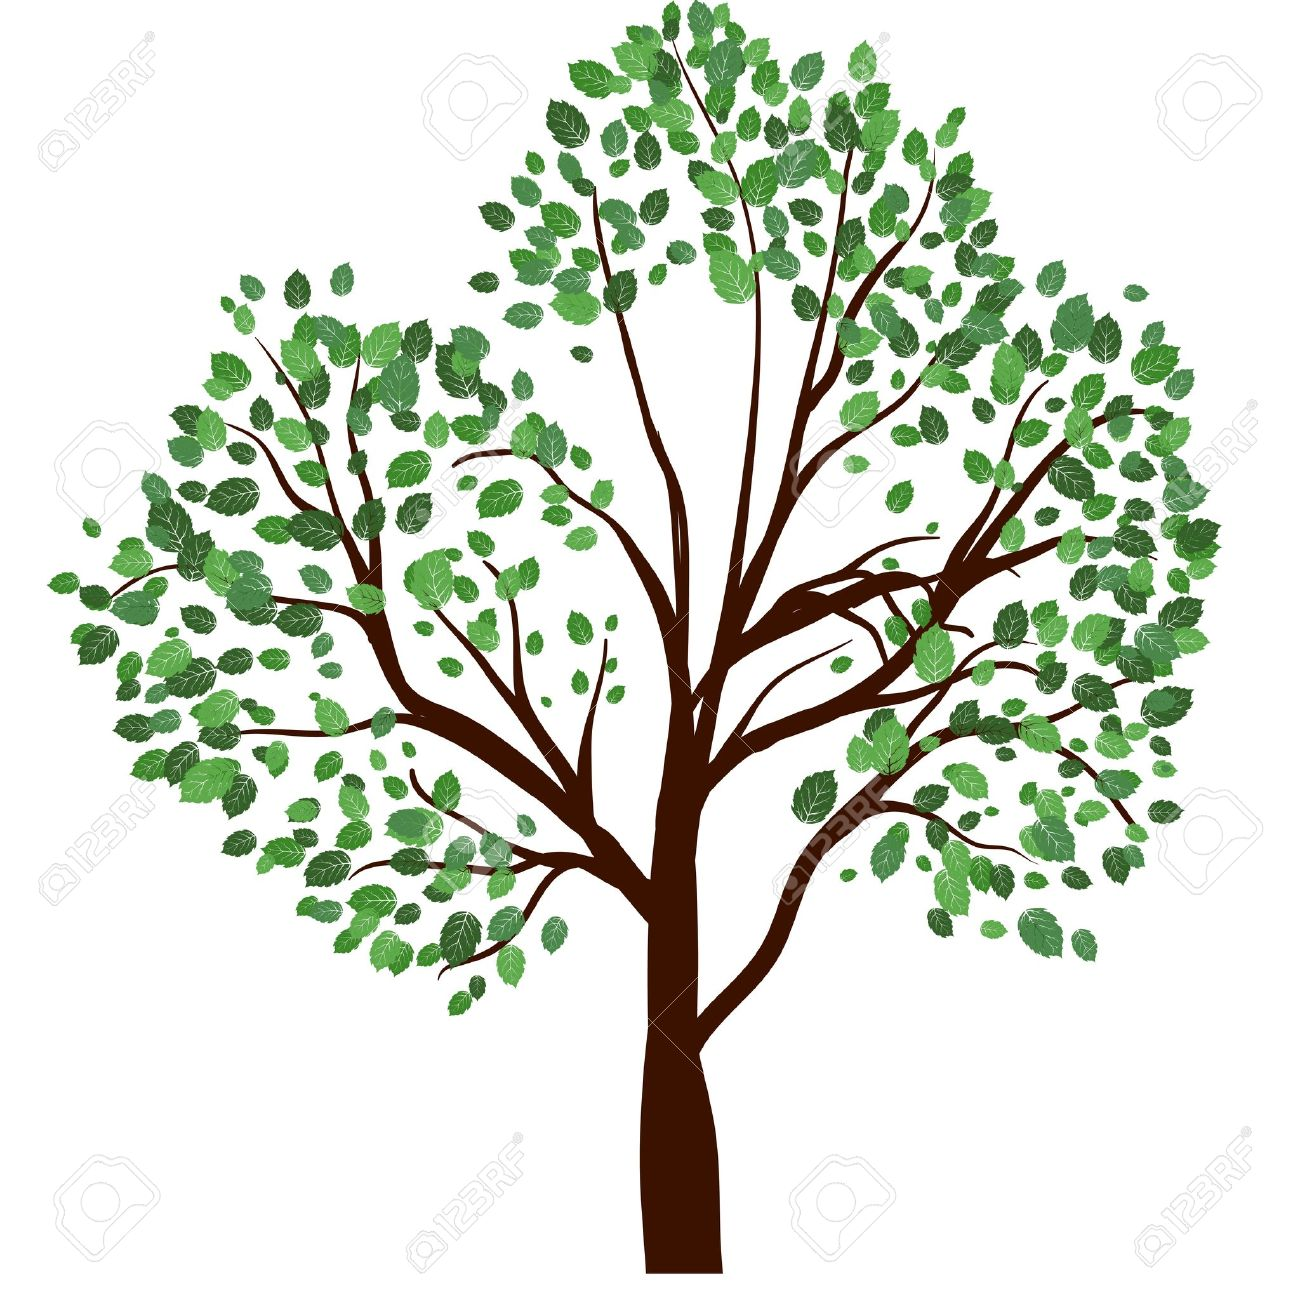 Summer Tree With Green Leaves. EPS 10 Vector Illustration. Royalty.